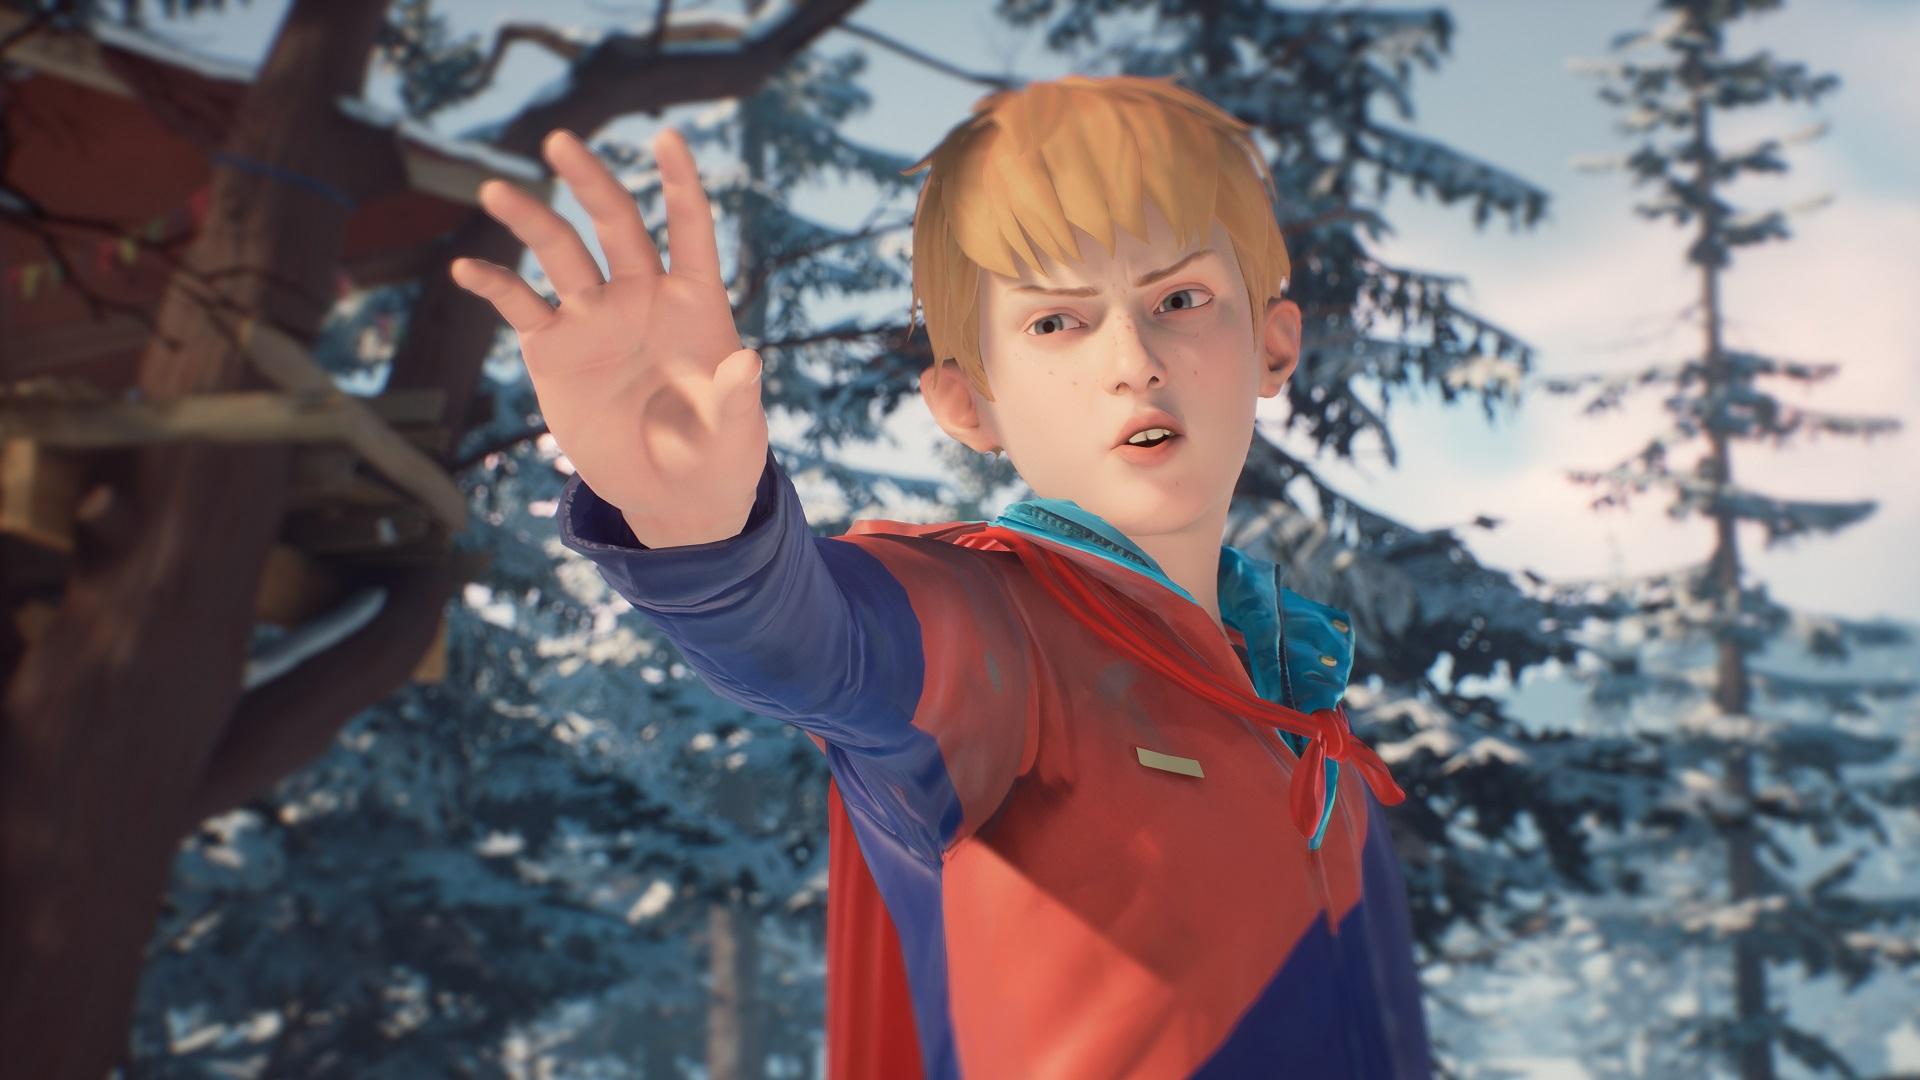 Captain Spirit springs to life a day earlier than planned screenshot